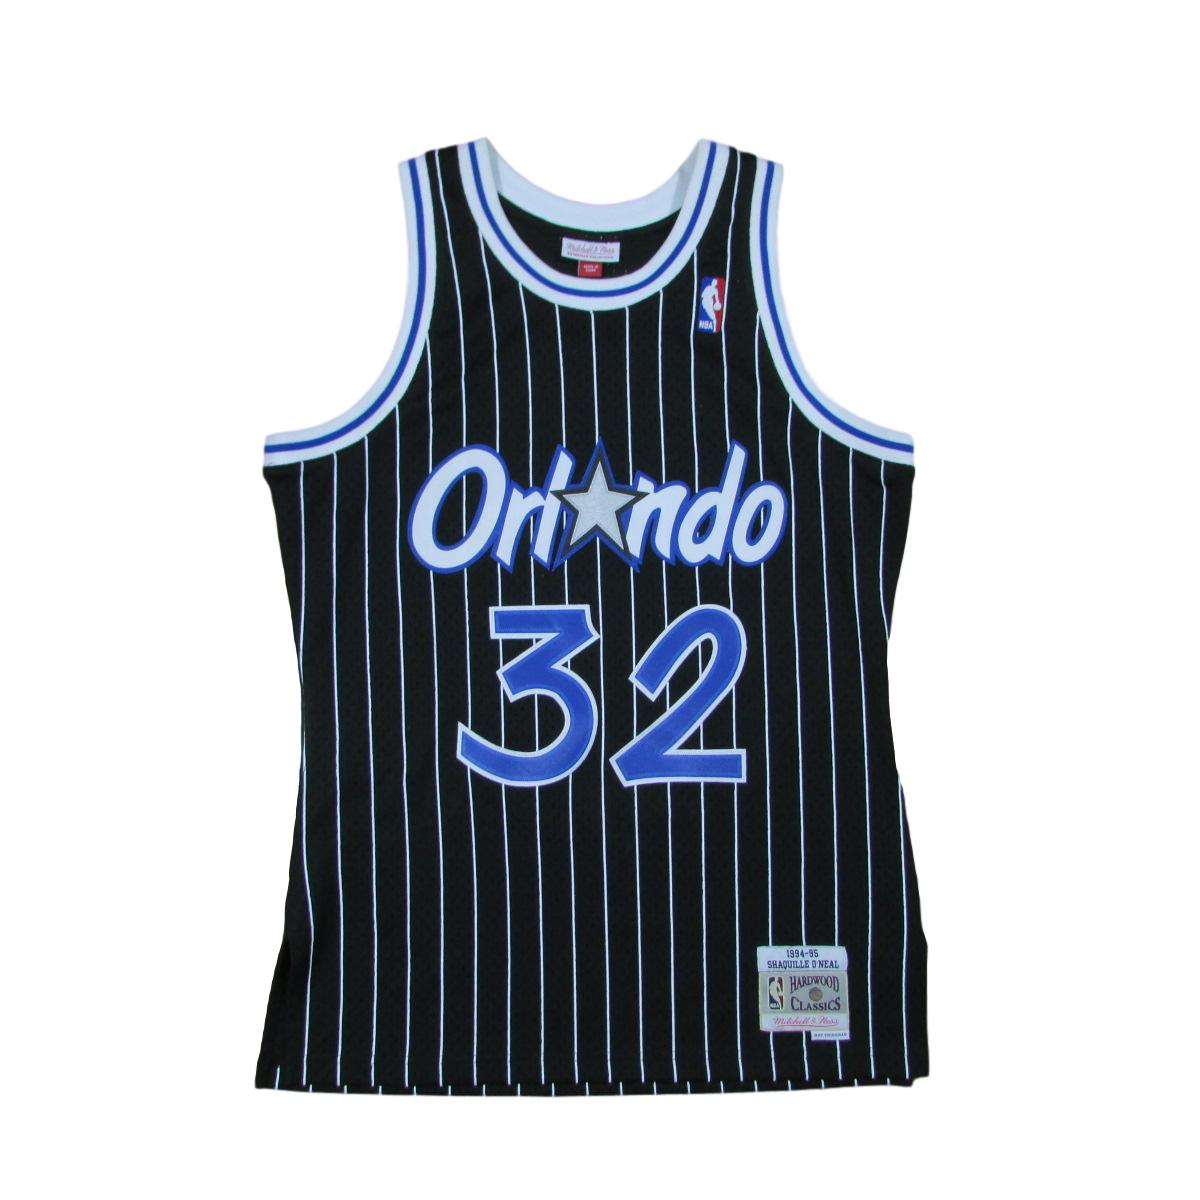 Orlando Magic Shaquille O'Neal Pinstripes 1995 Basketball Jersey Mitchell & Ness Sz 48